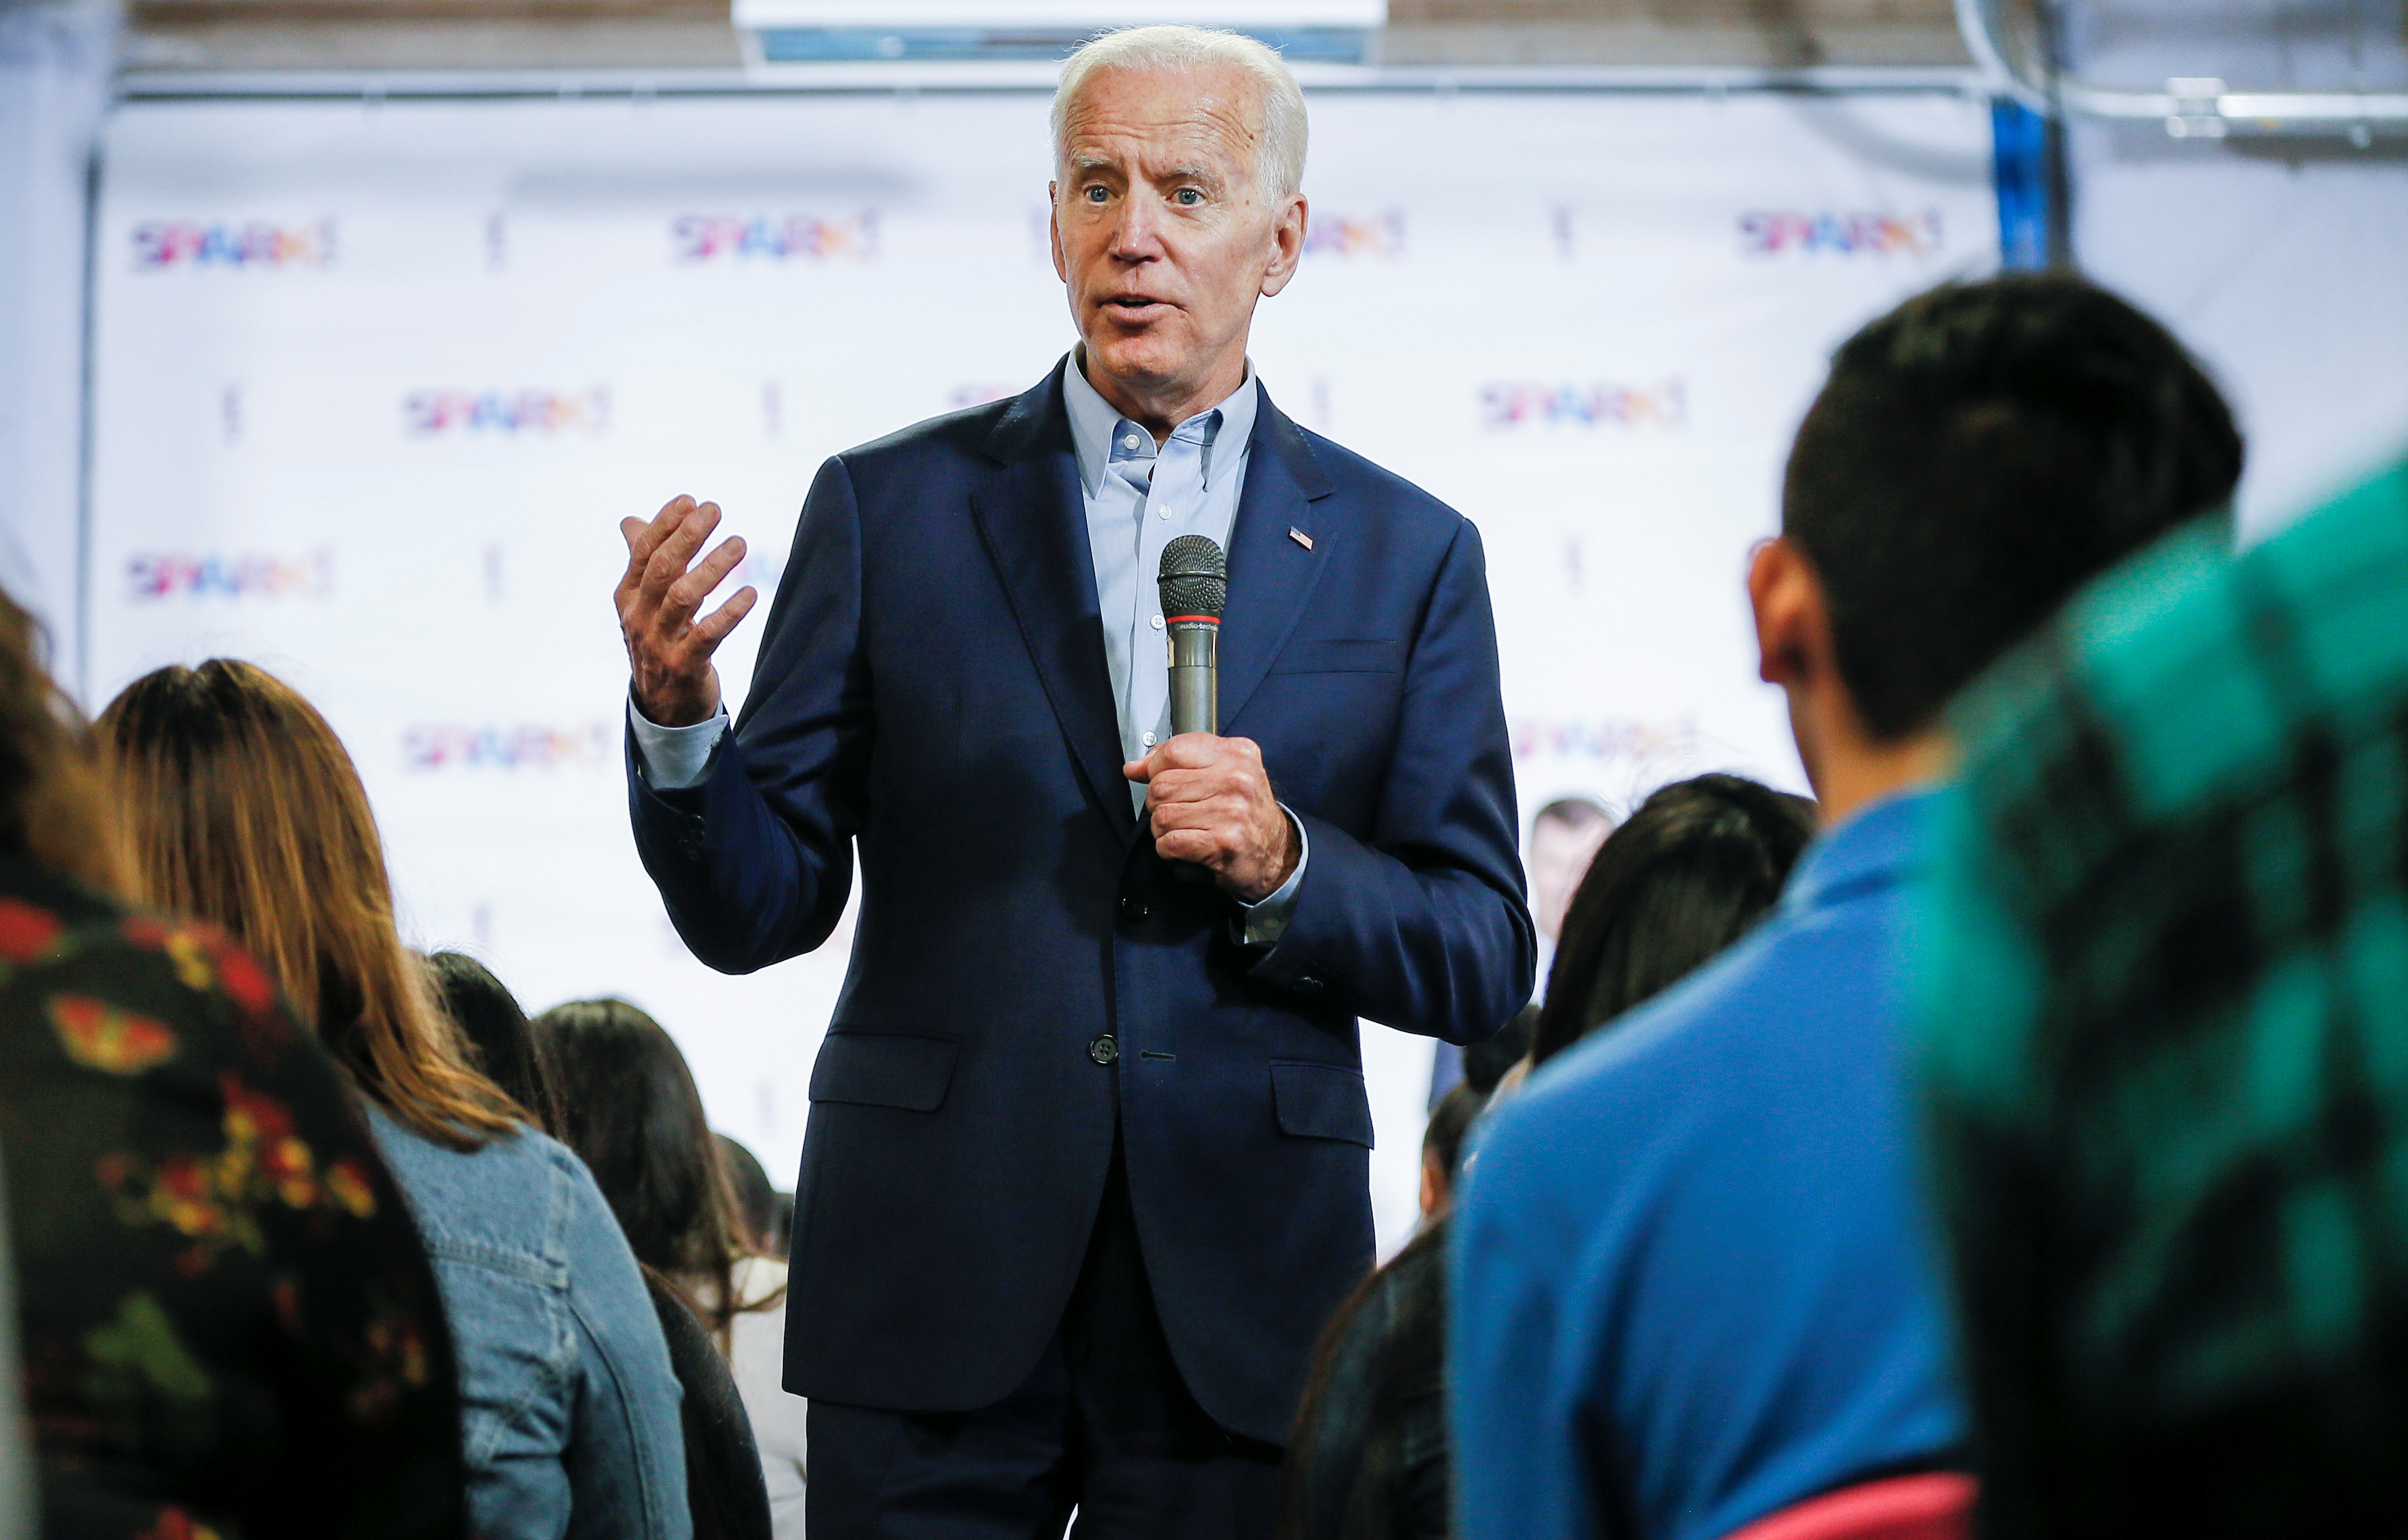 Democratic 2020 U.S. Presidential candidate Joe Biden campaigns at the SPARK! educational center in Dallas